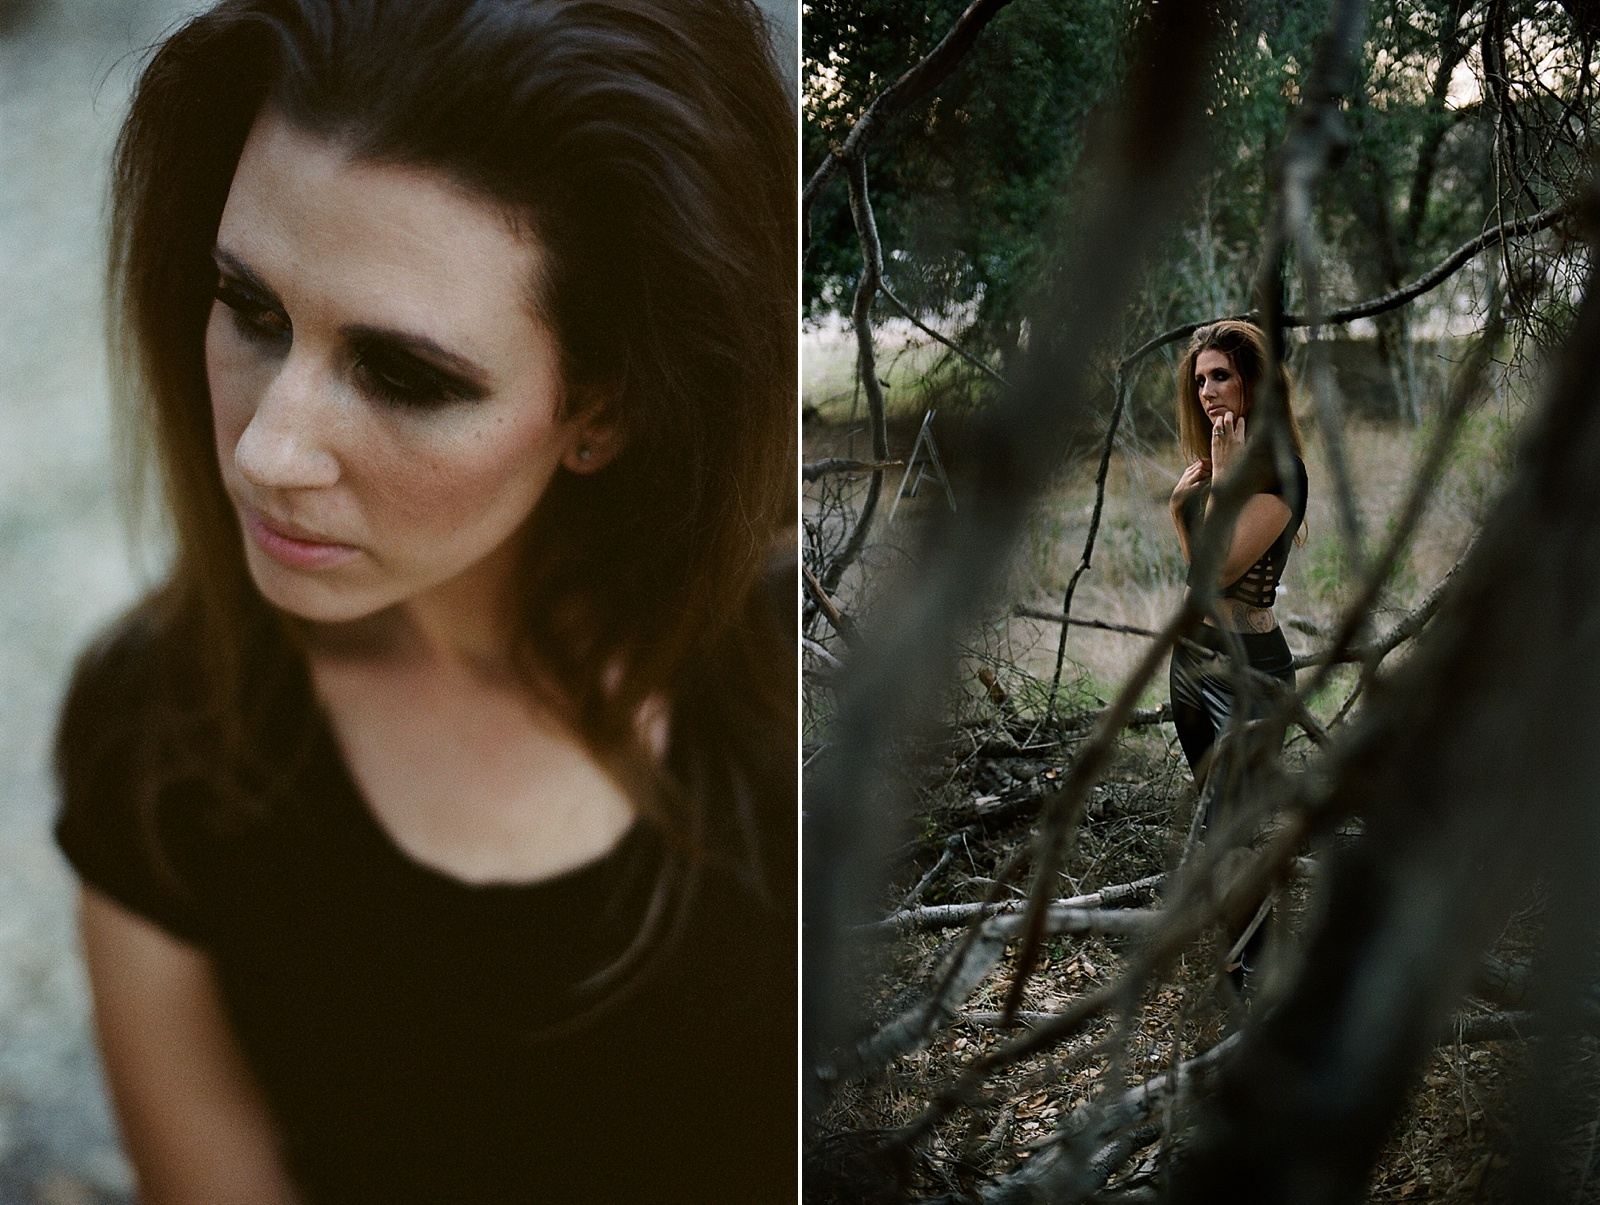 Fine art portraiture from San Diego portrait photographer Lauren Nygard